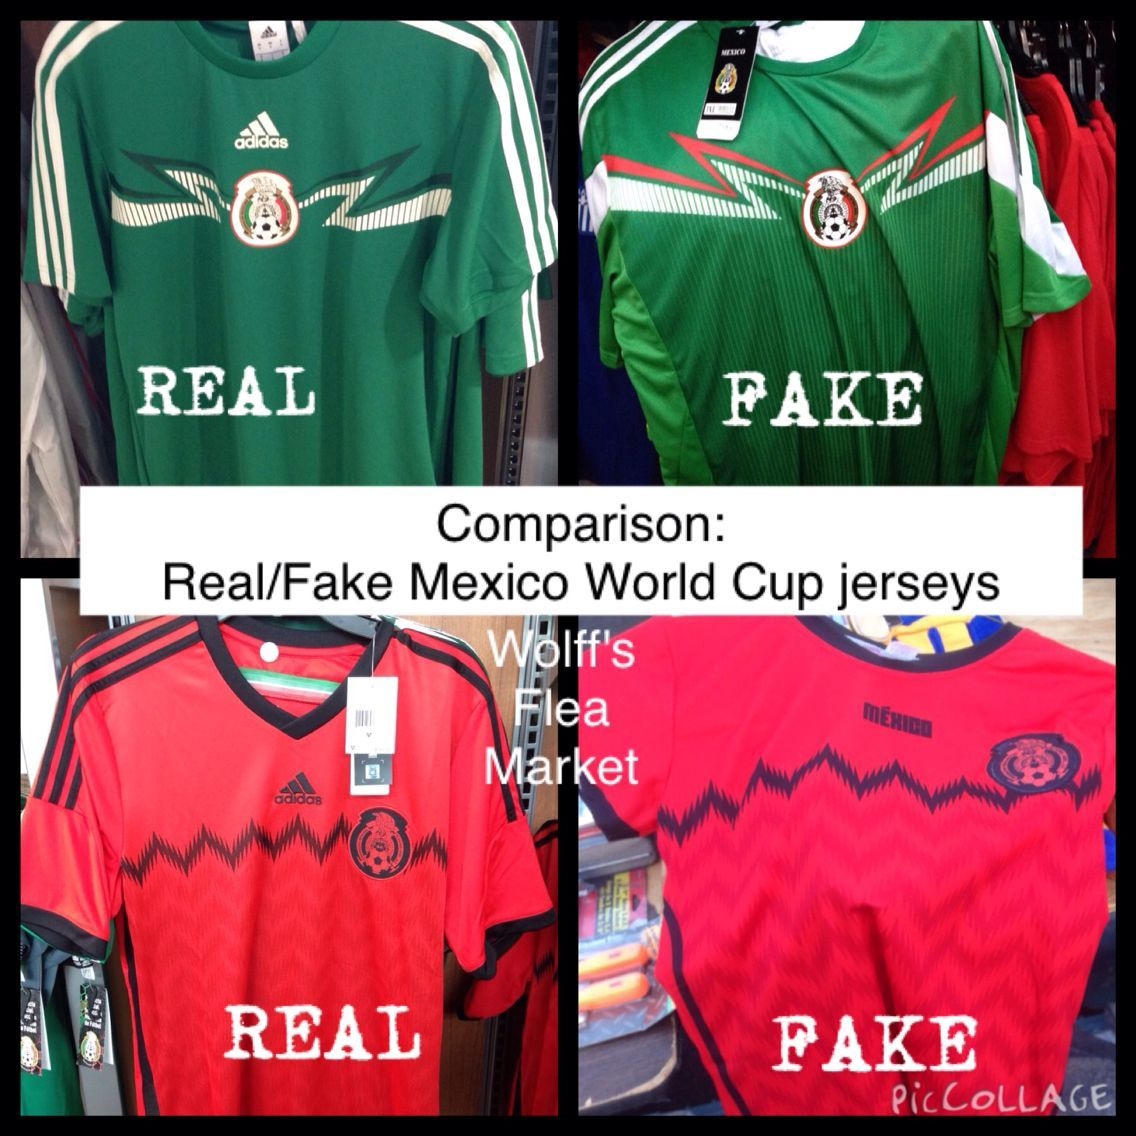 93b1418c9b2 COMPARISON OF REAL AND FAKE MEXICO WORLD CUP JERSEYS